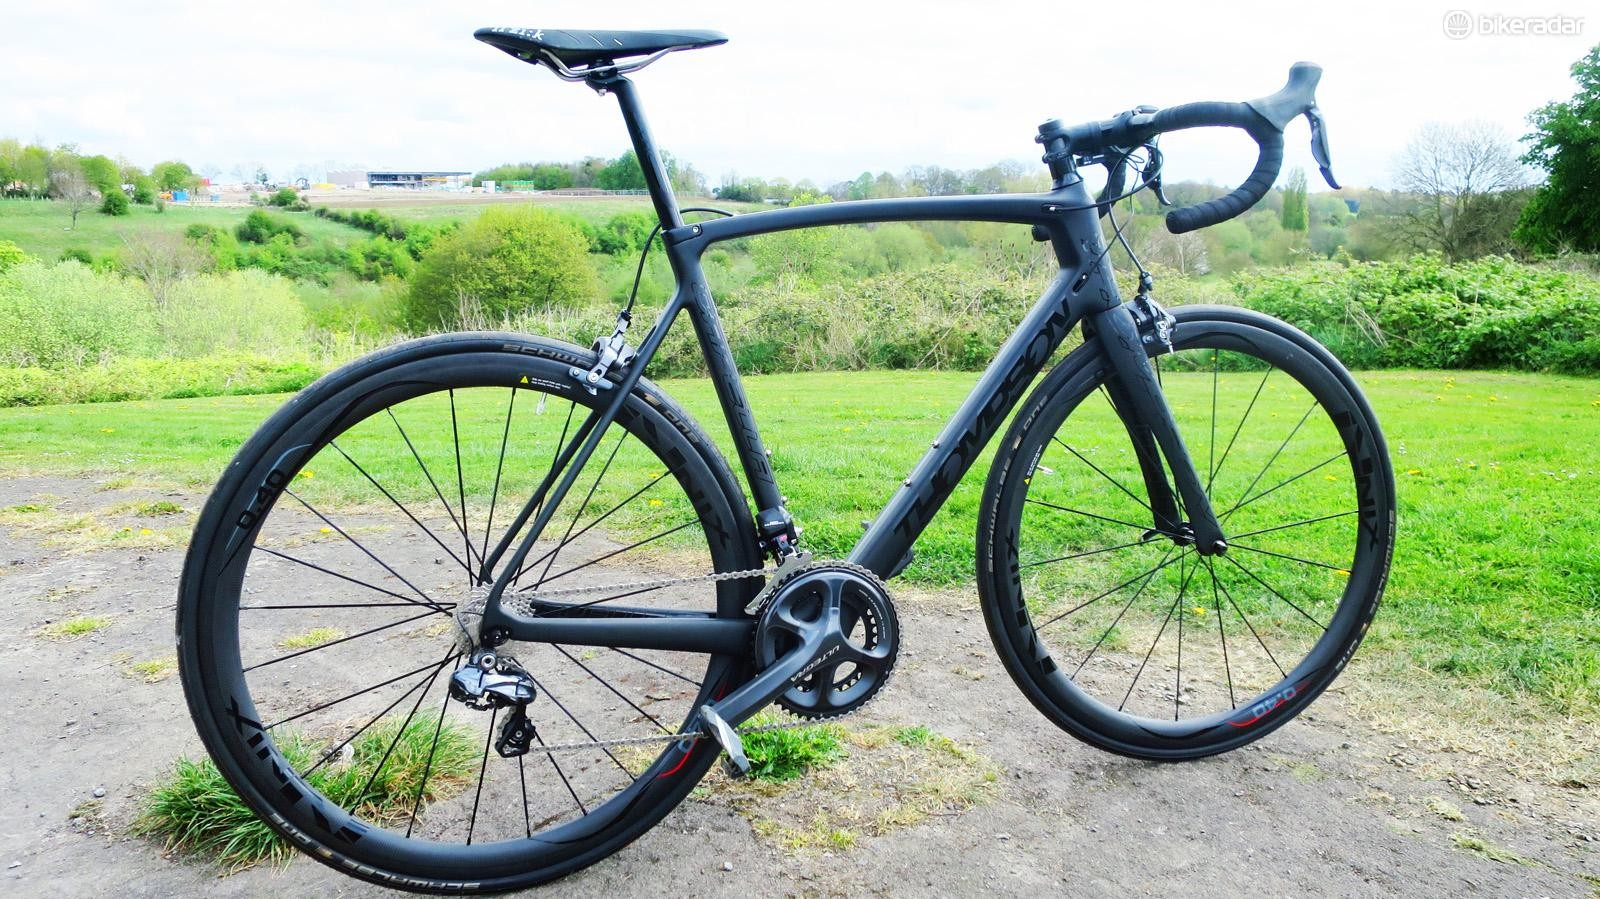 Our test bike is a seriously steathly bike, but with 36 different colours available in a mind-boggling mix of all of them you can create your own unique finish and all at no extra cost